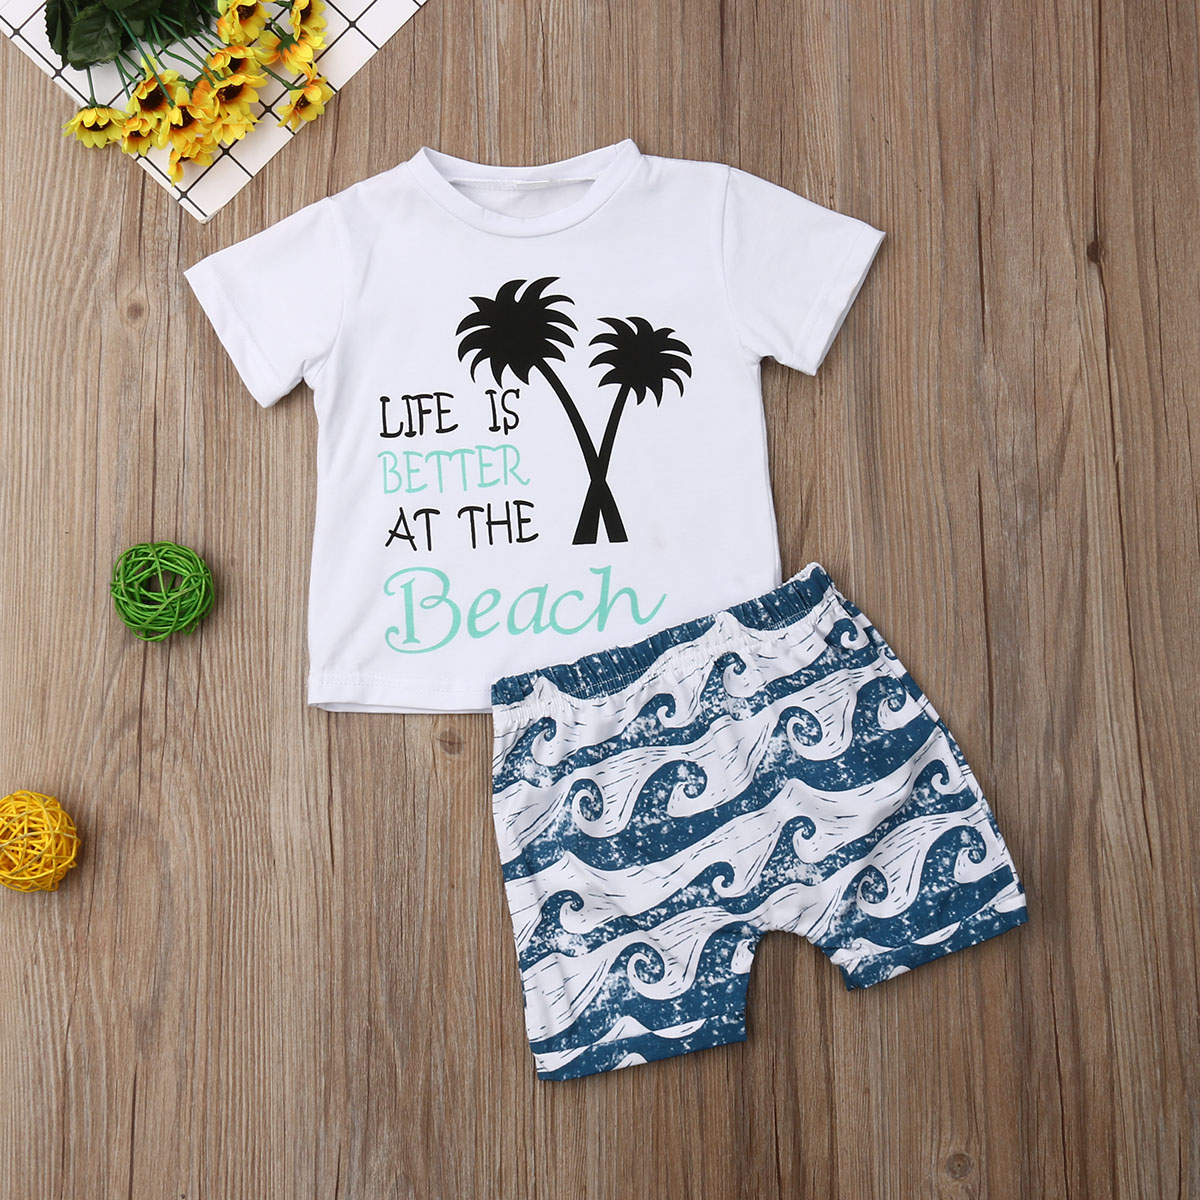 Pudcoco Summer Newborn Baby Boy Clothes T-Shirt+Waves Print Shorts 2PCS Outfits Summer Casual Clothes